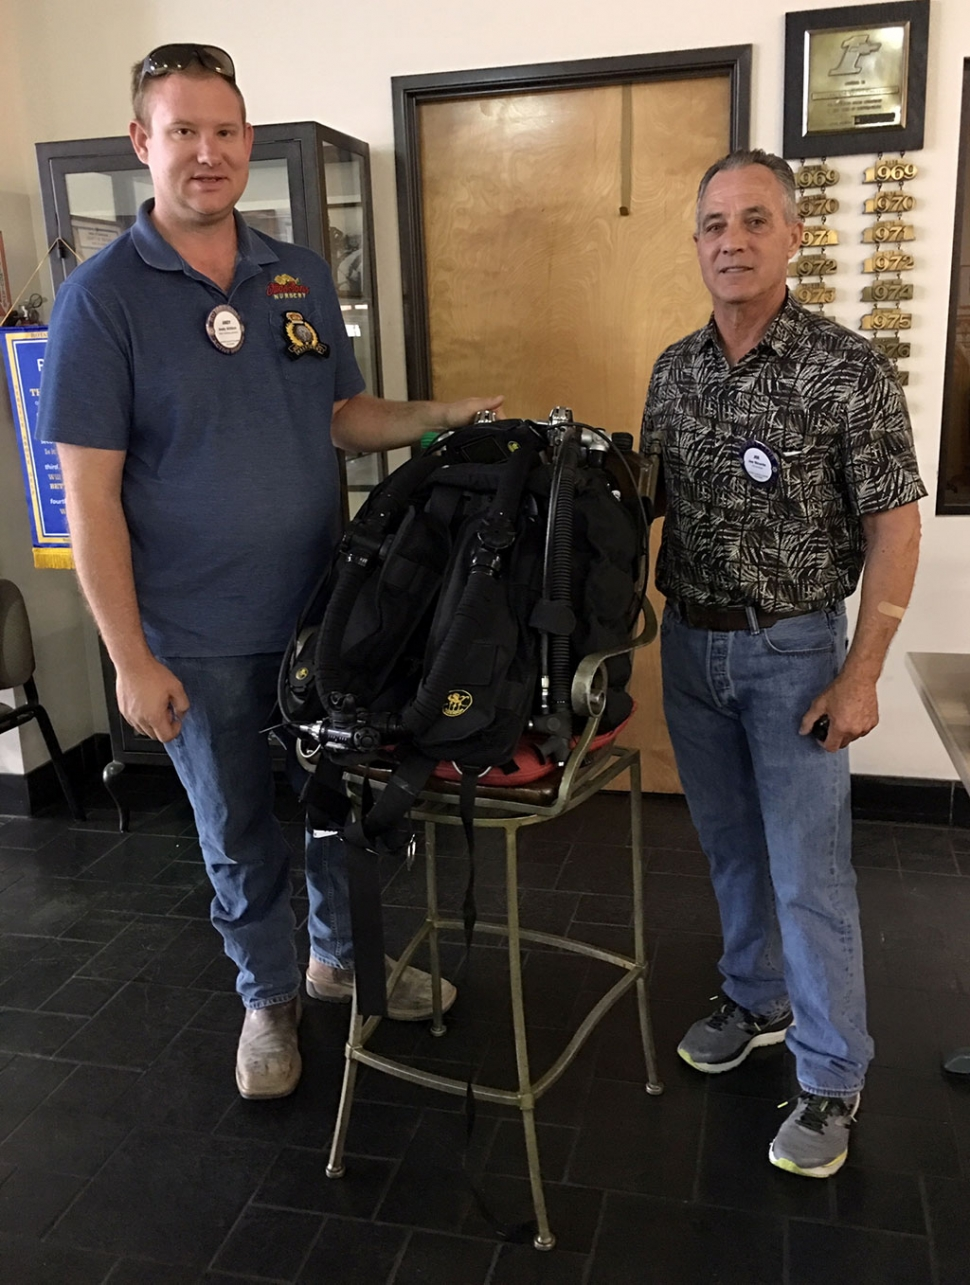 Pictured is Rotary President Andy Klittich with Rotary Member Joe Ricards who presented to the club about being a certified scuba instructor in several specific areas. He brought along his most recent equipment, a rebreather which allows him to stay underwater for up to three hours at 130 feet. He described his dives and places he has gone, and his passion for the sport. Photo courtesy Martha Richardson.